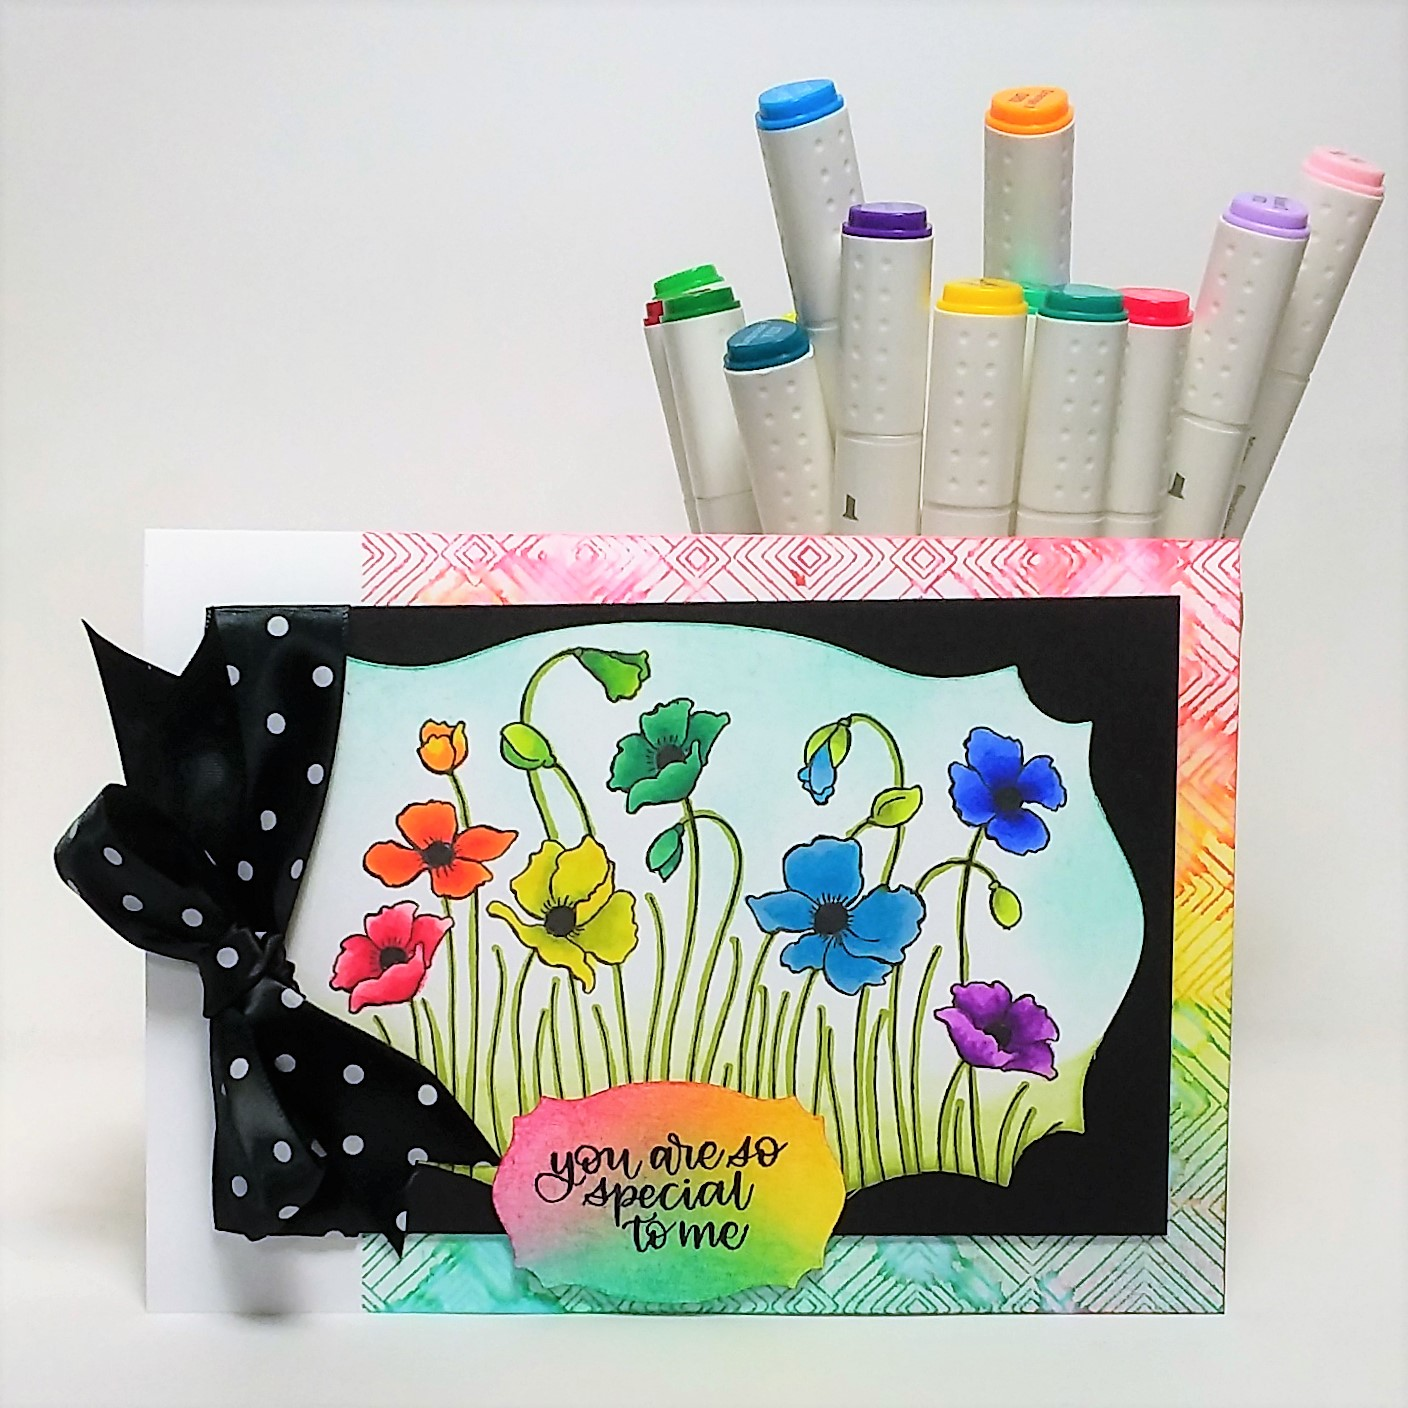 Maker and Stamp Giveaway! PLUS 2 ways to blend and stencil with alcohol markers!